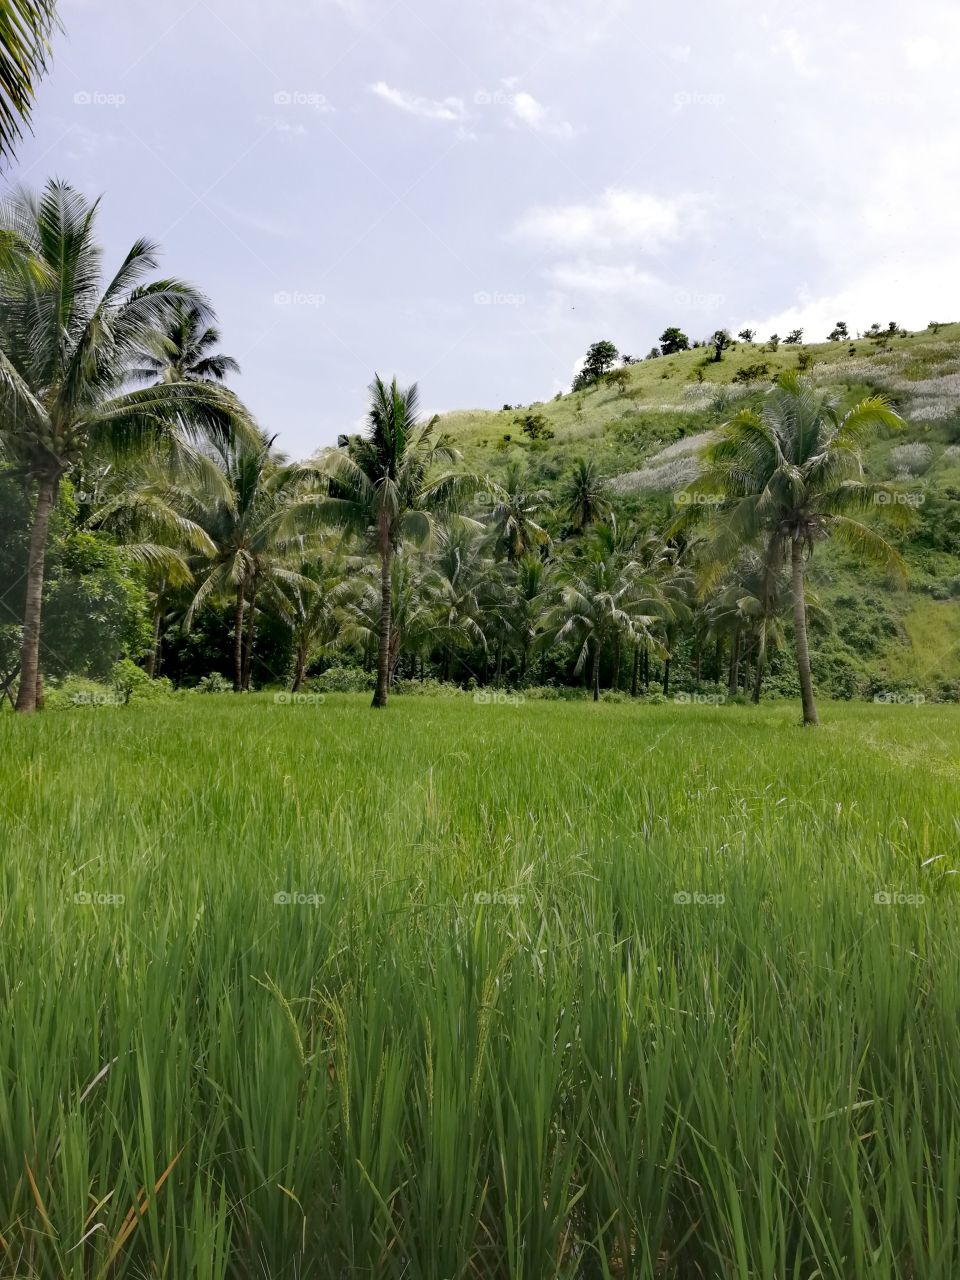 Tall coconut trees amidst fresh green rice fields and hills in the background, in Abra De Ilog, Mindoro, Island of Philippines